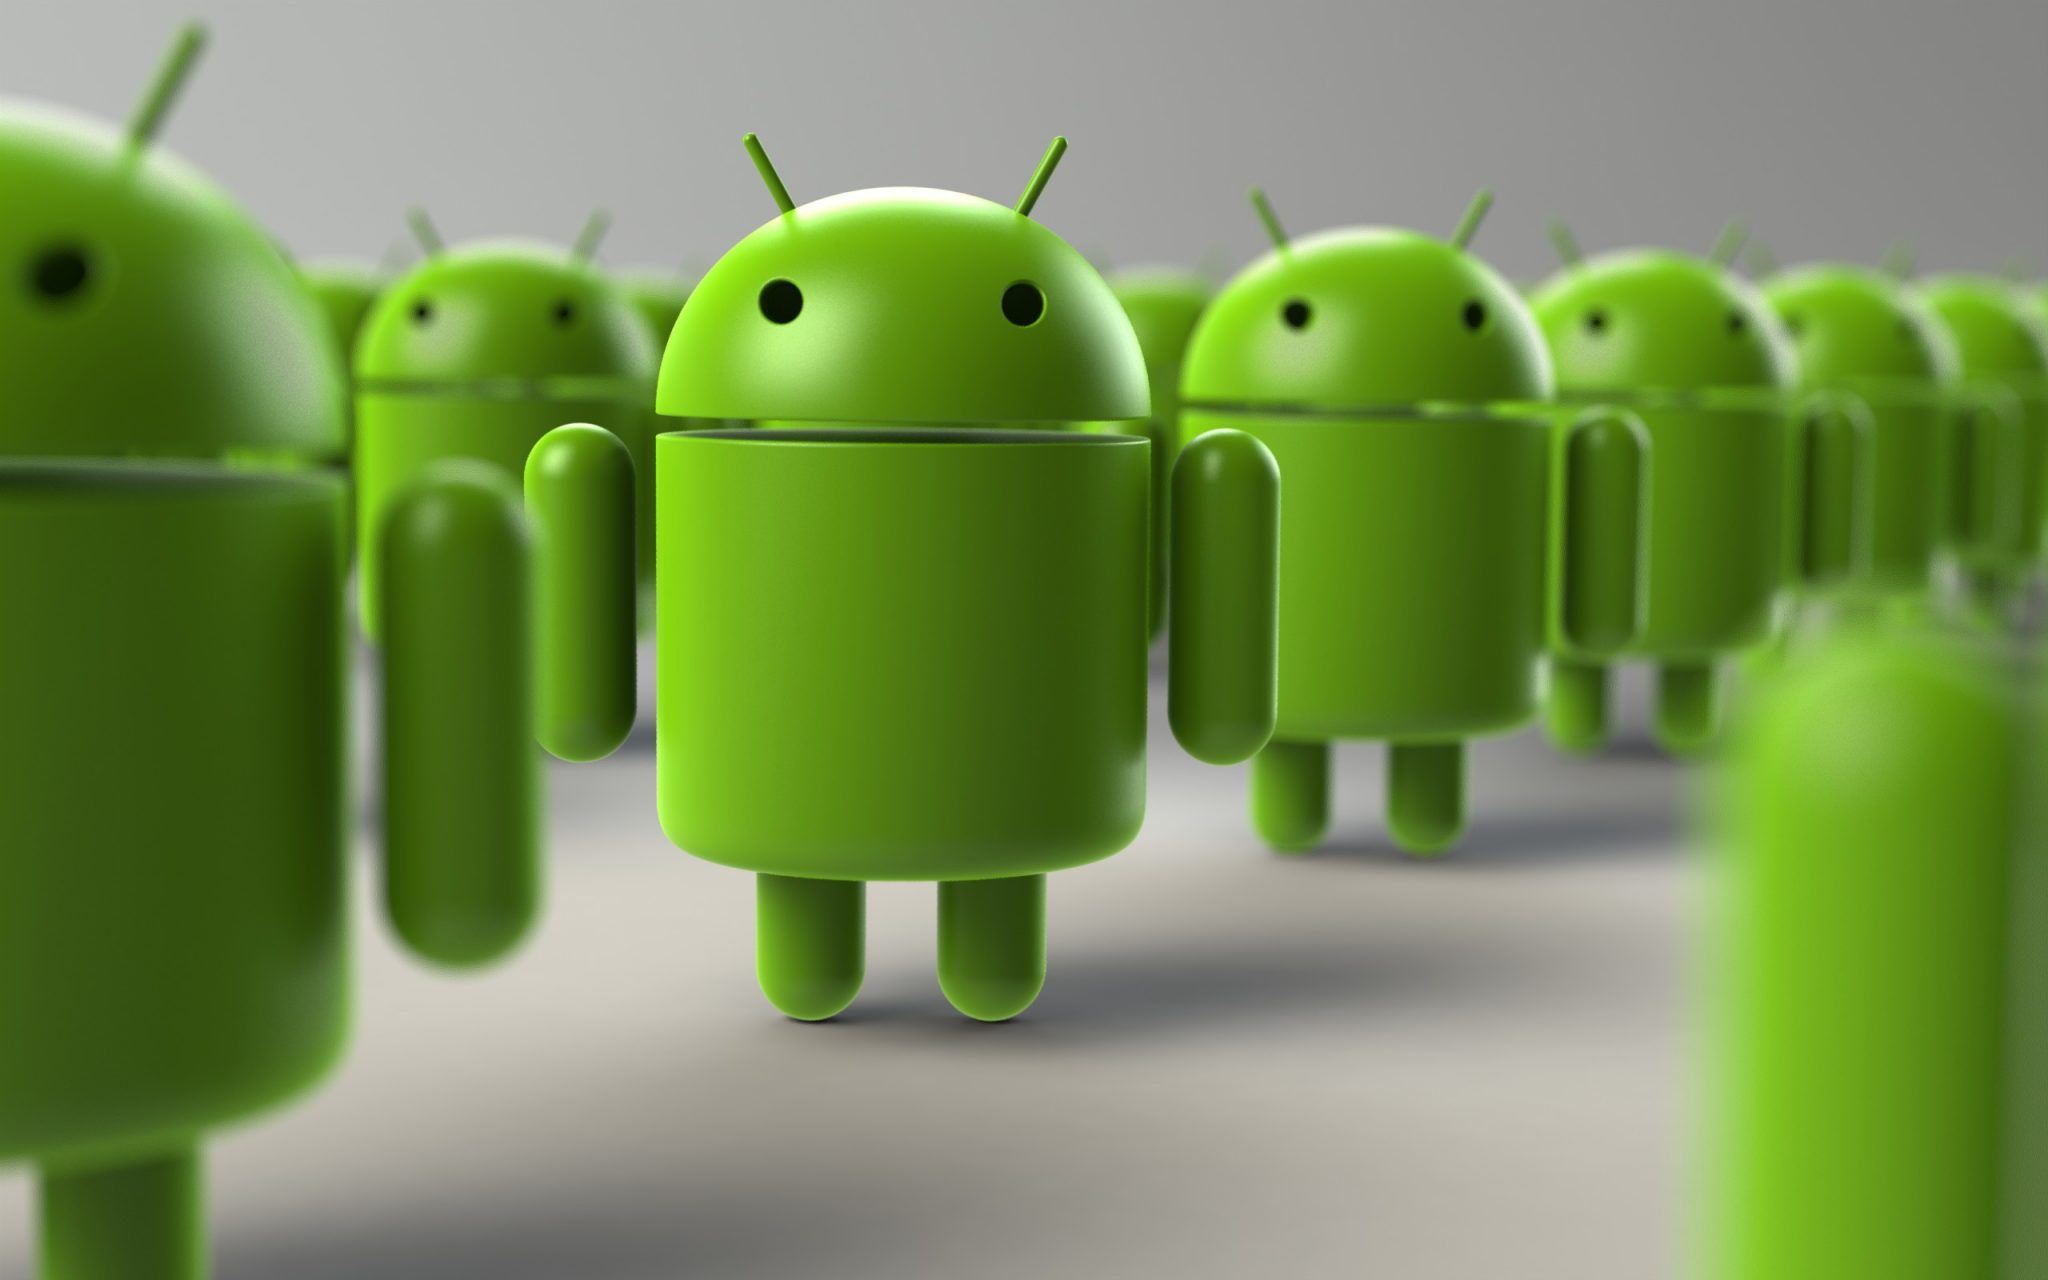 How likely is it for your Android to get affected by Viruses?